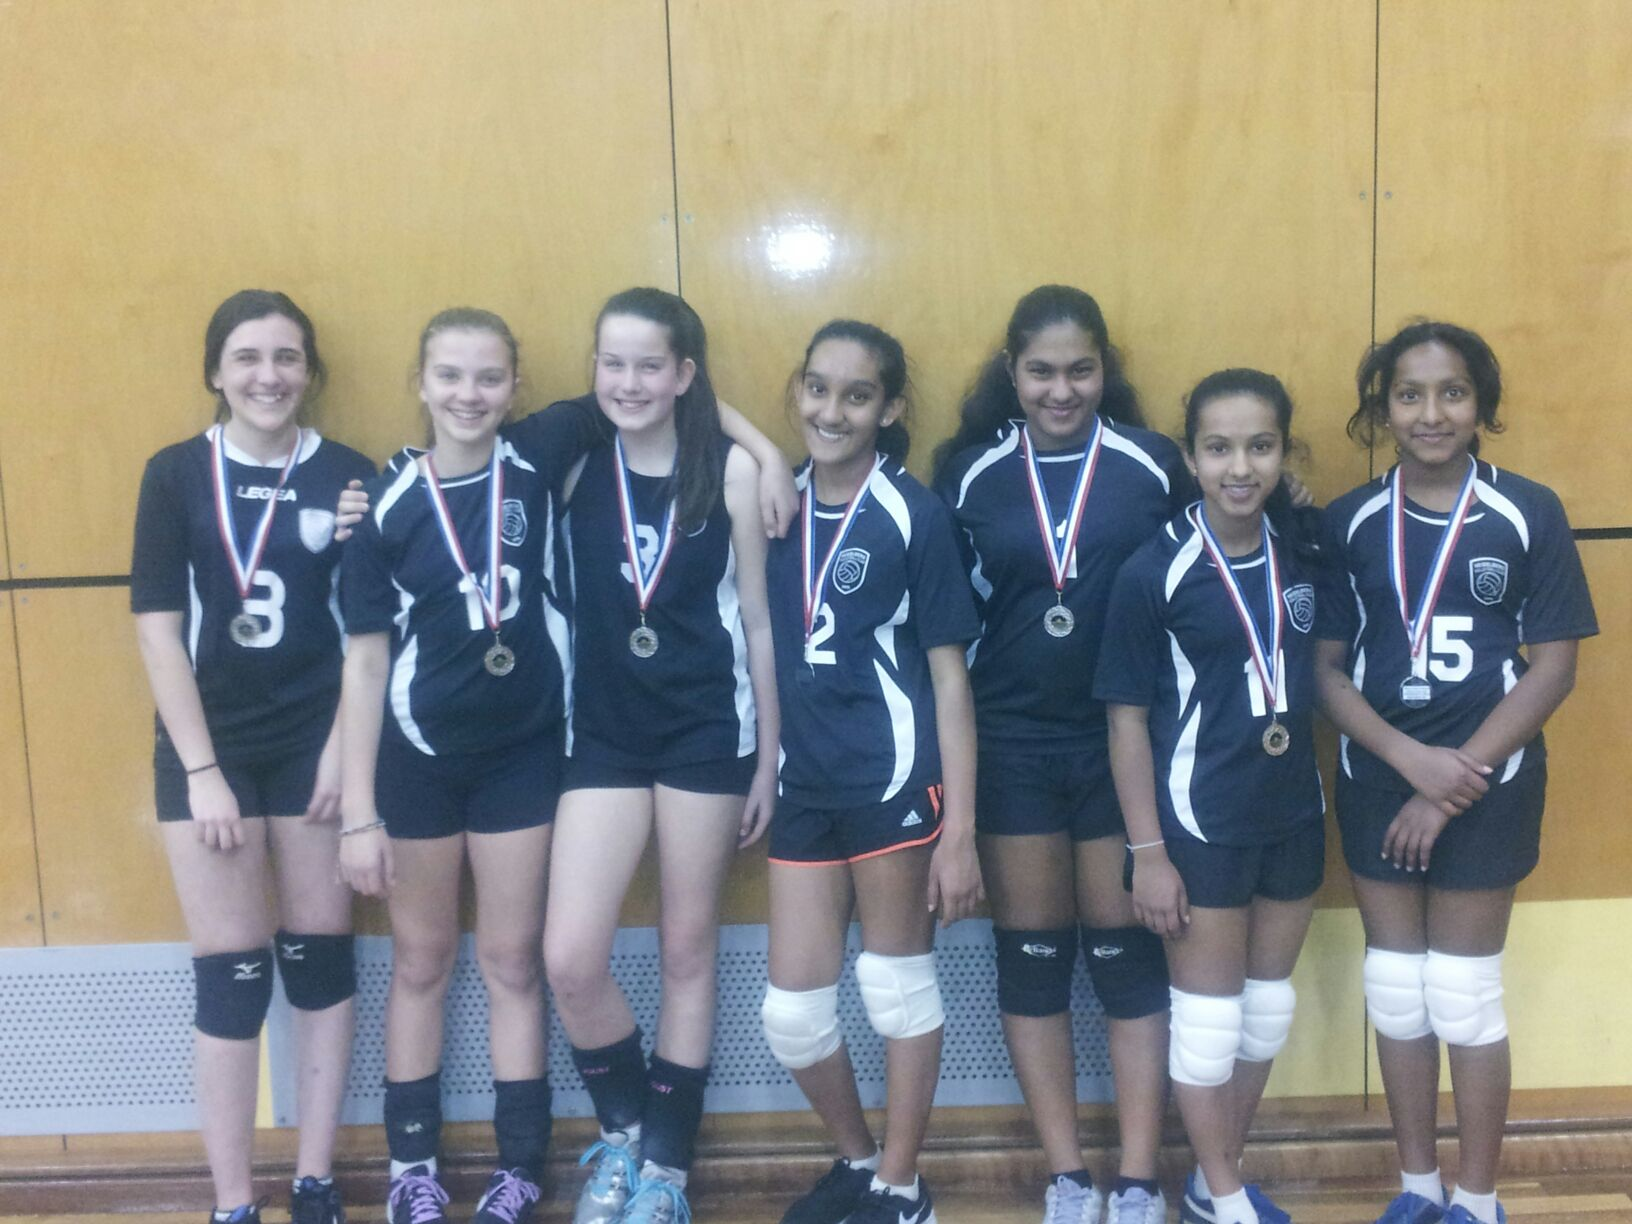 Volleyball Region So Wrv League Silver Medalists